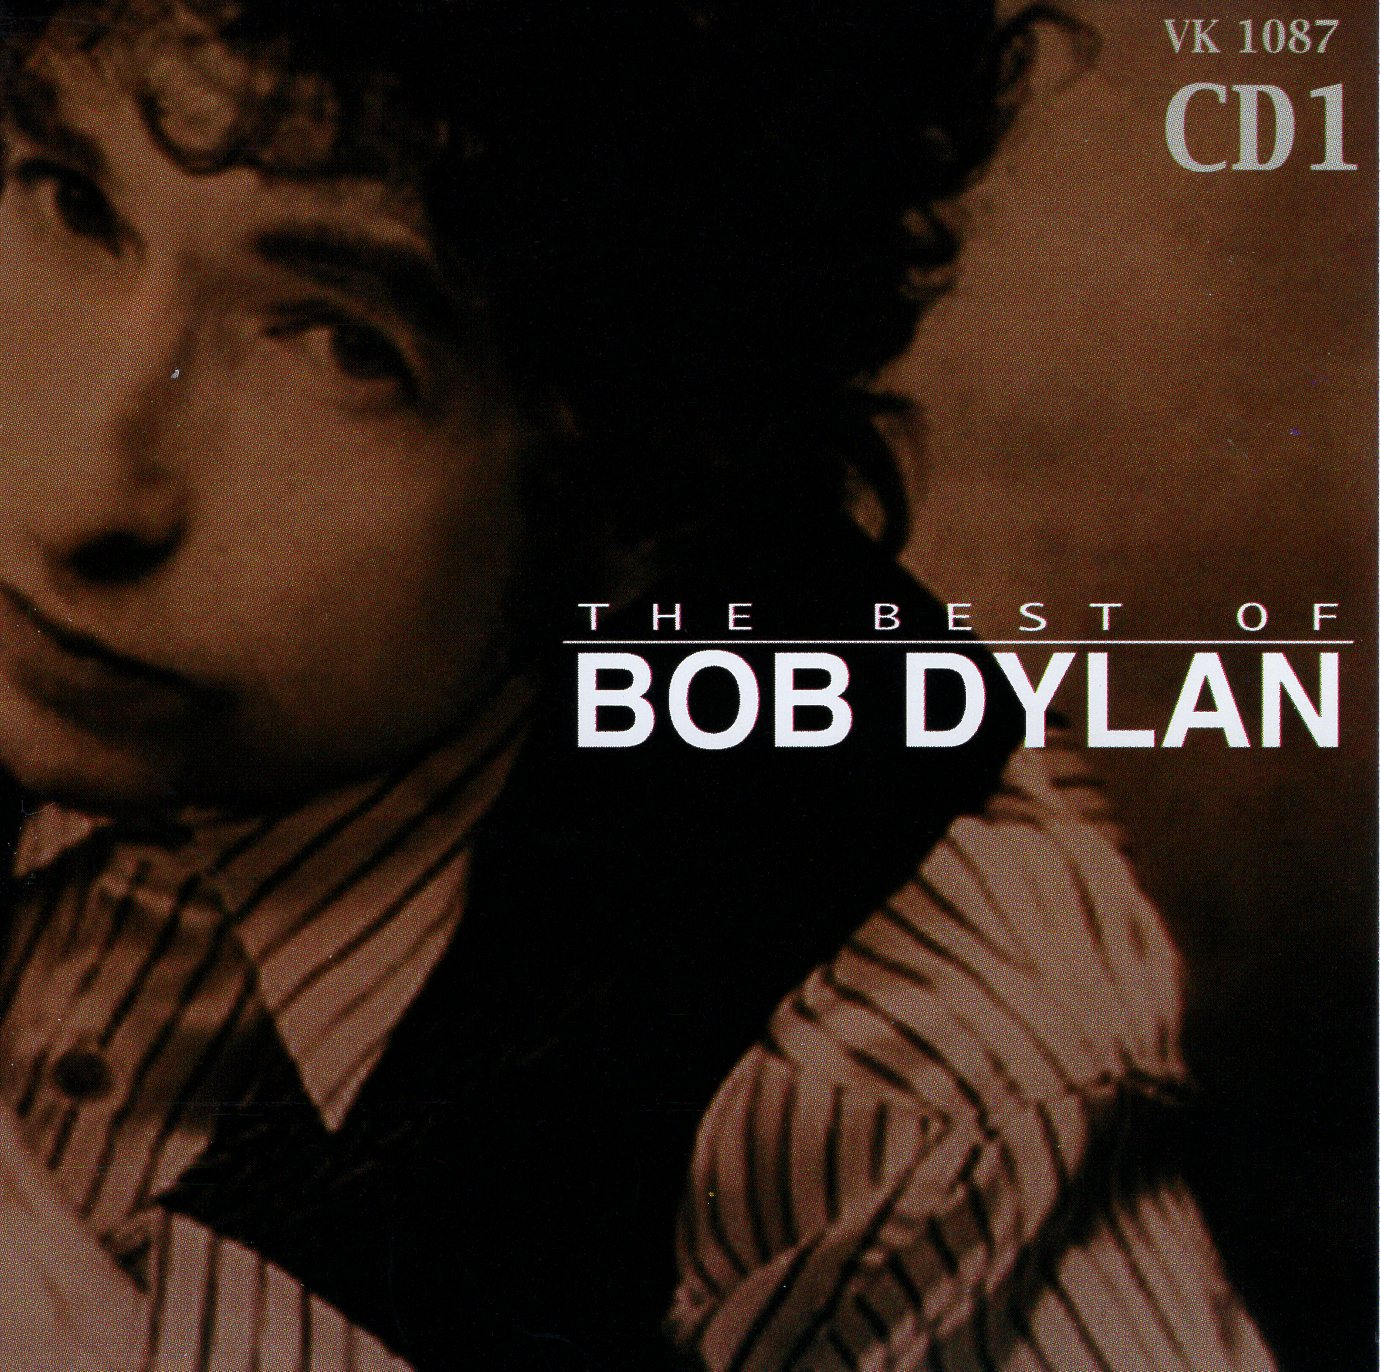 """The Best of Bob Dylan CD1"" Bob Dylan"